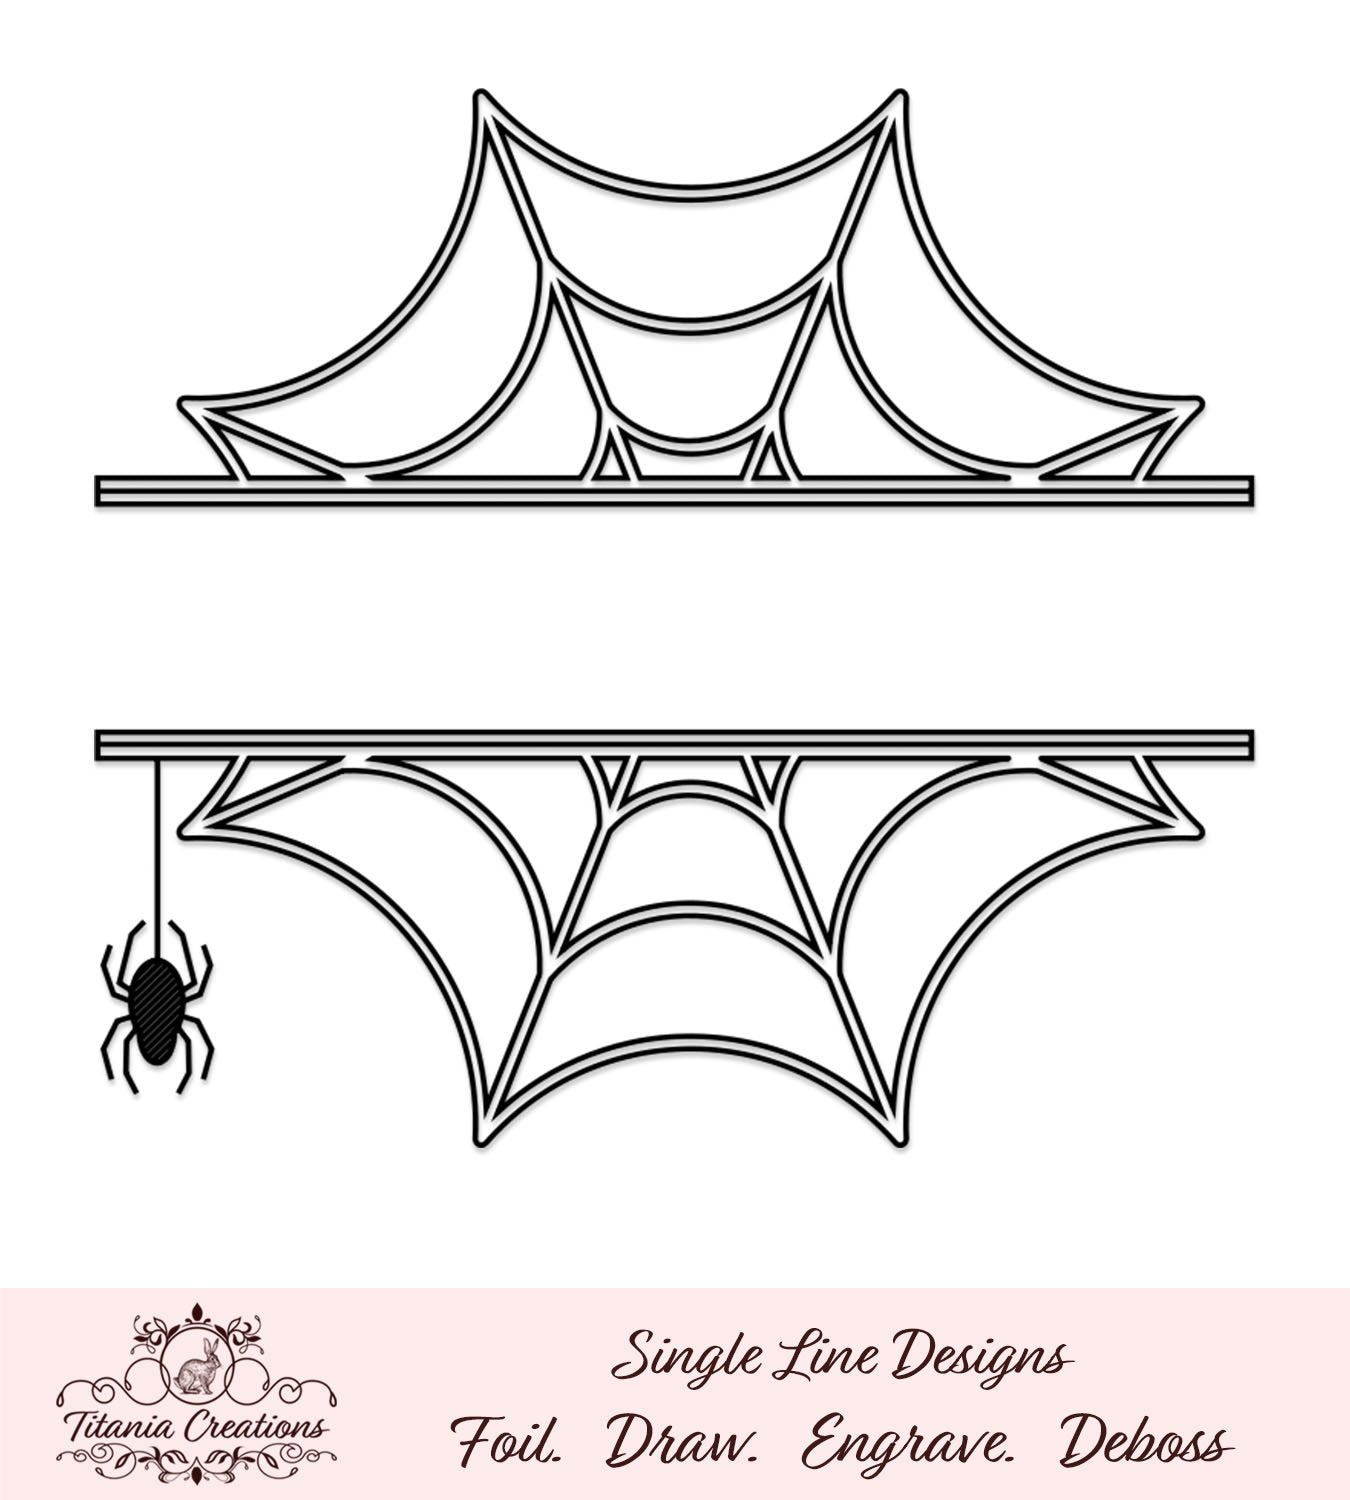 Single Line Split Spider Web Foil Quill Svg